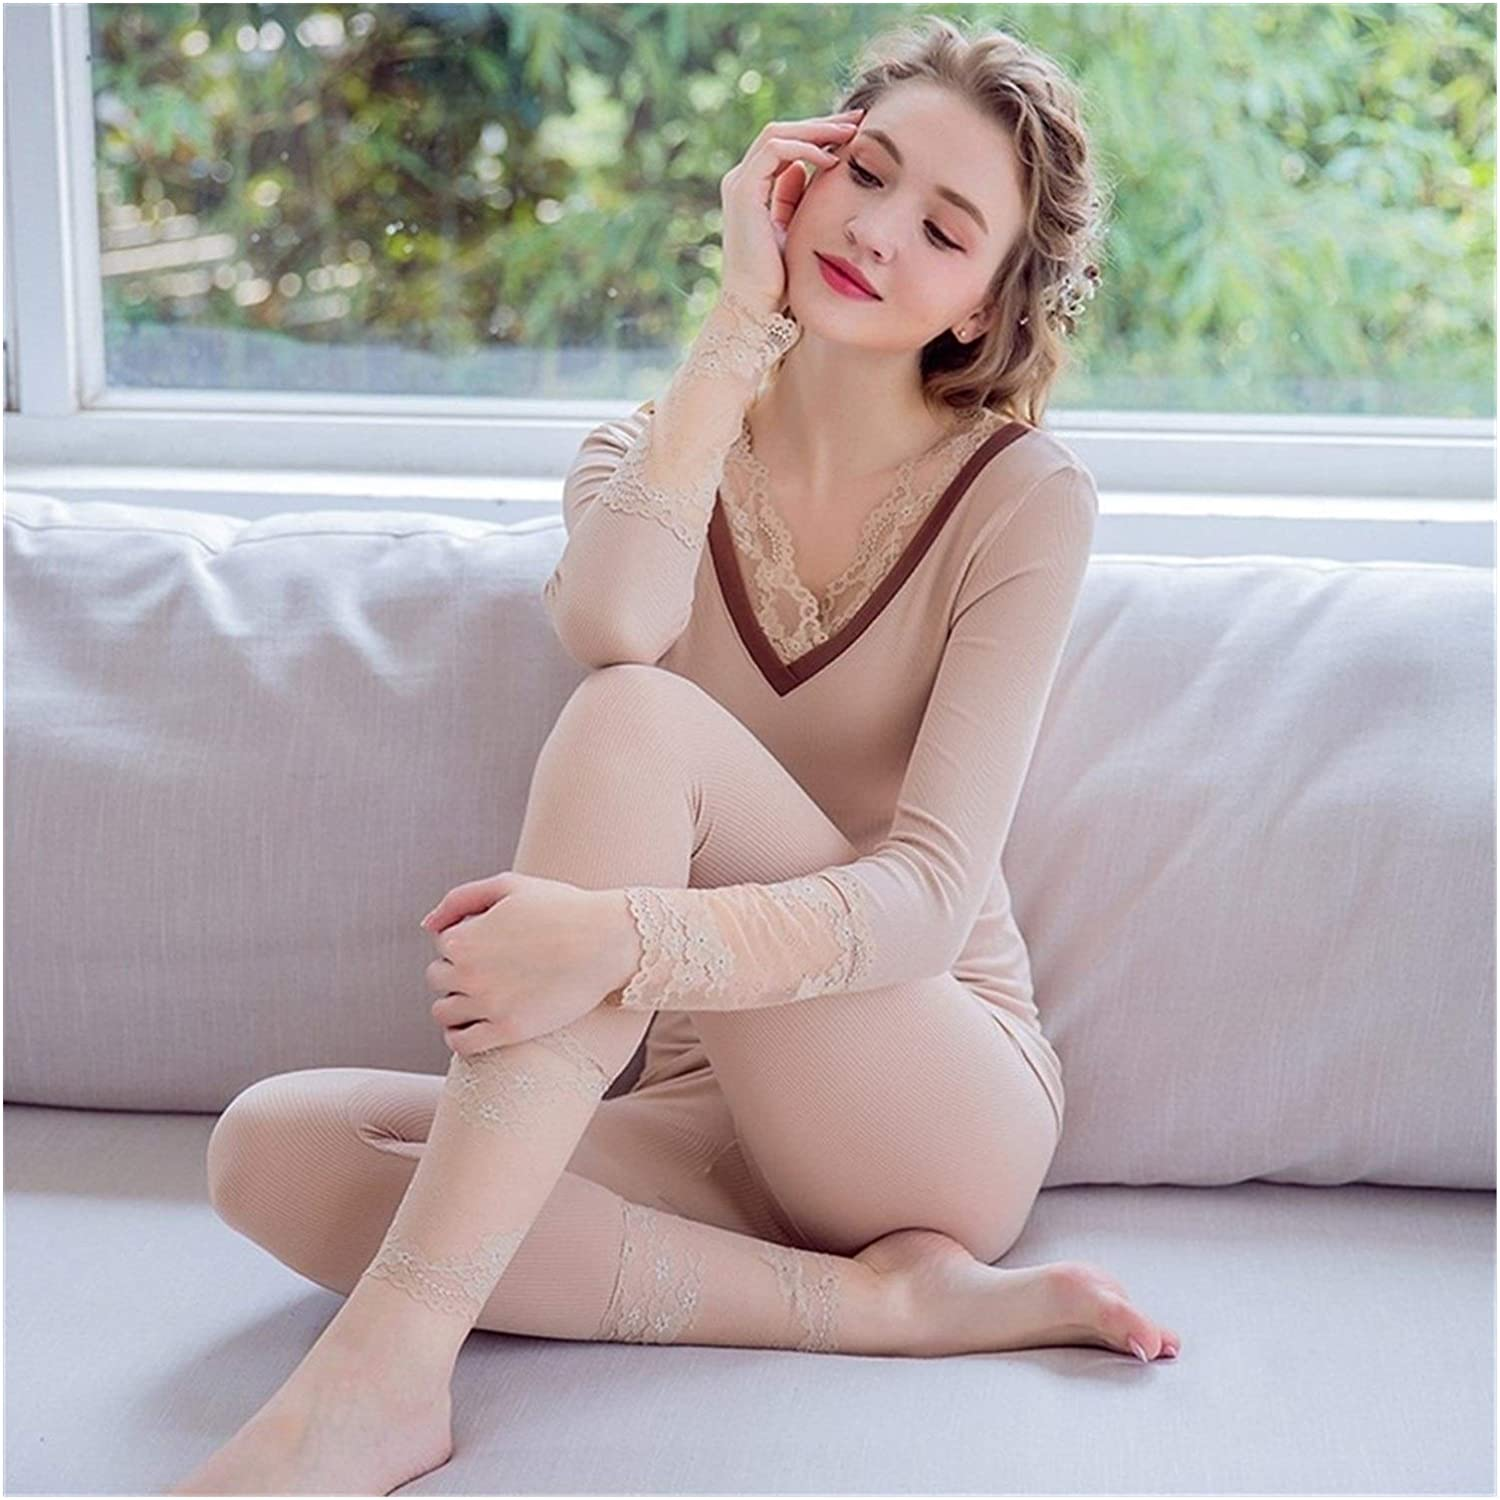 QWERBAM Womens Thermal Underwear Sets Winter Warm Thermo Underwear Stretch Clothing Autumn Thermal Clothing (Color : 3, Size : One Size)